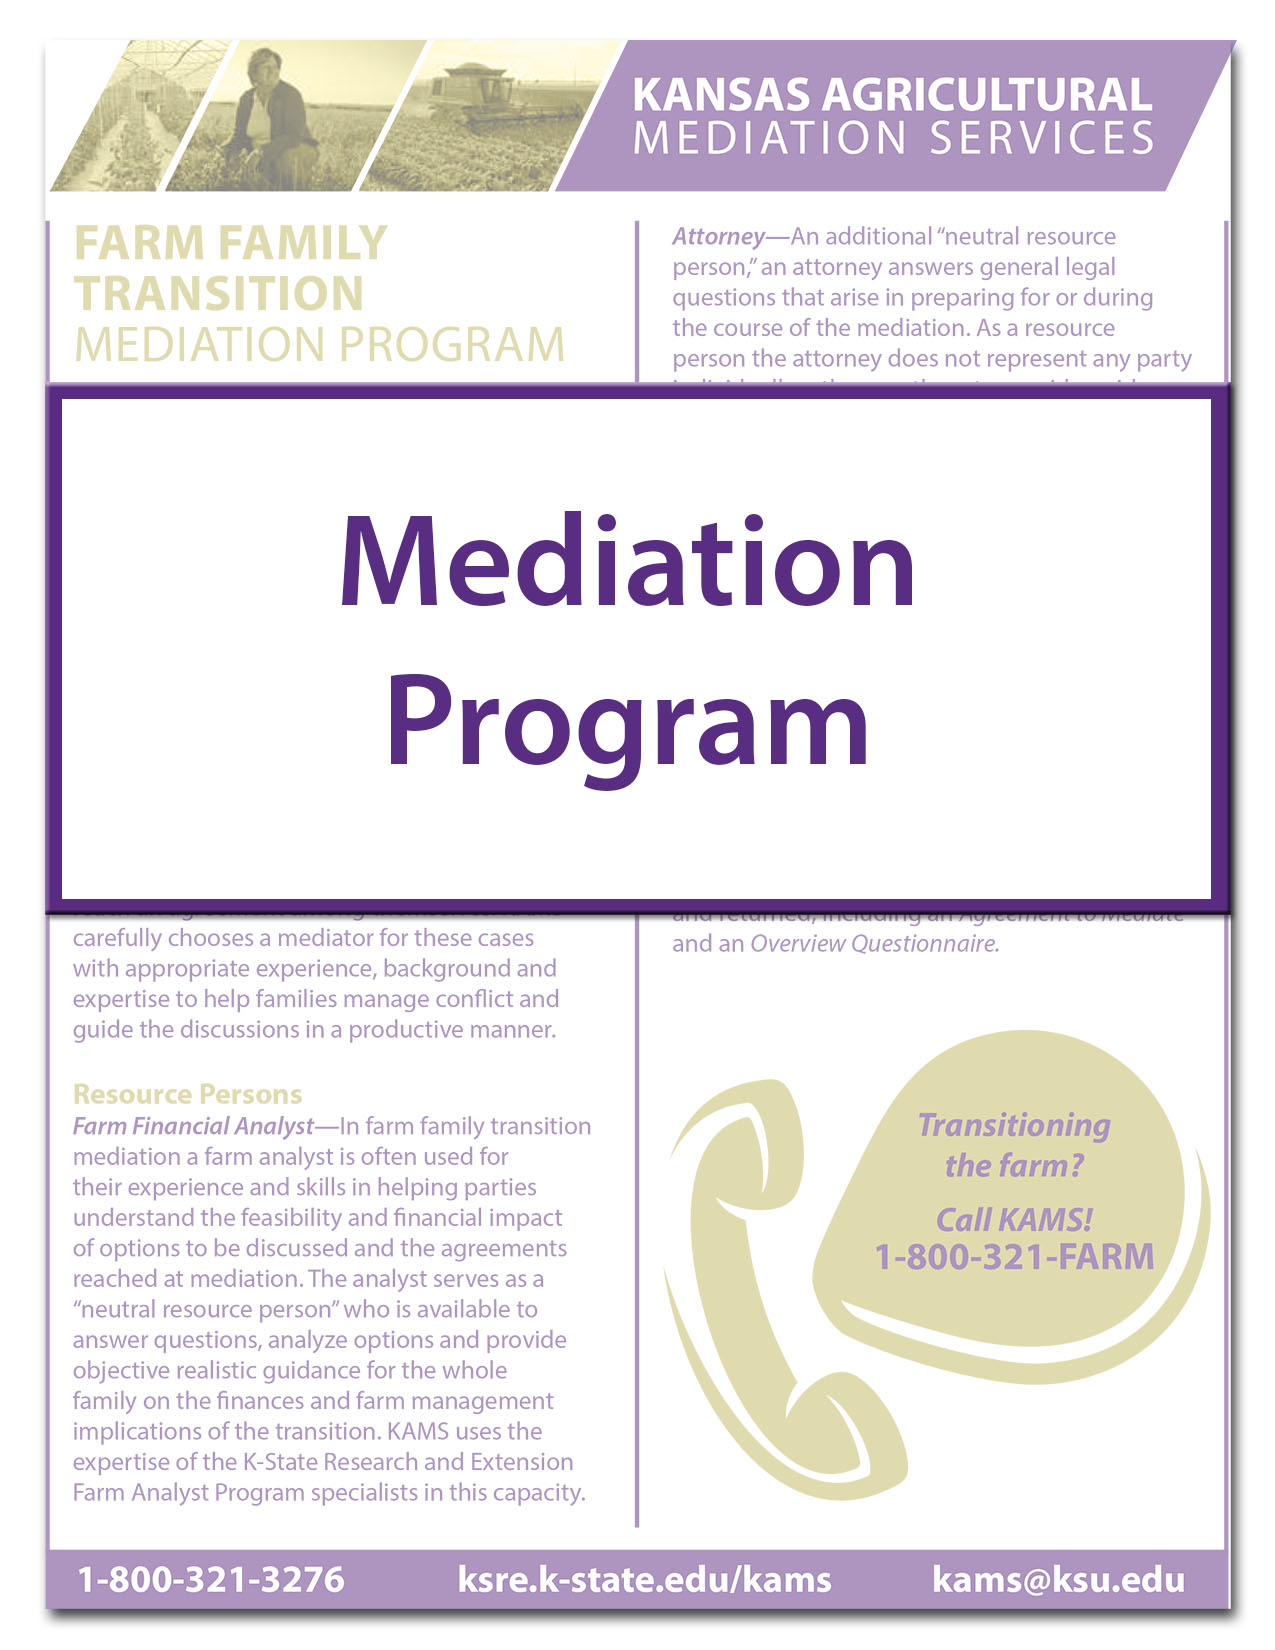 KAMS Mediation Program